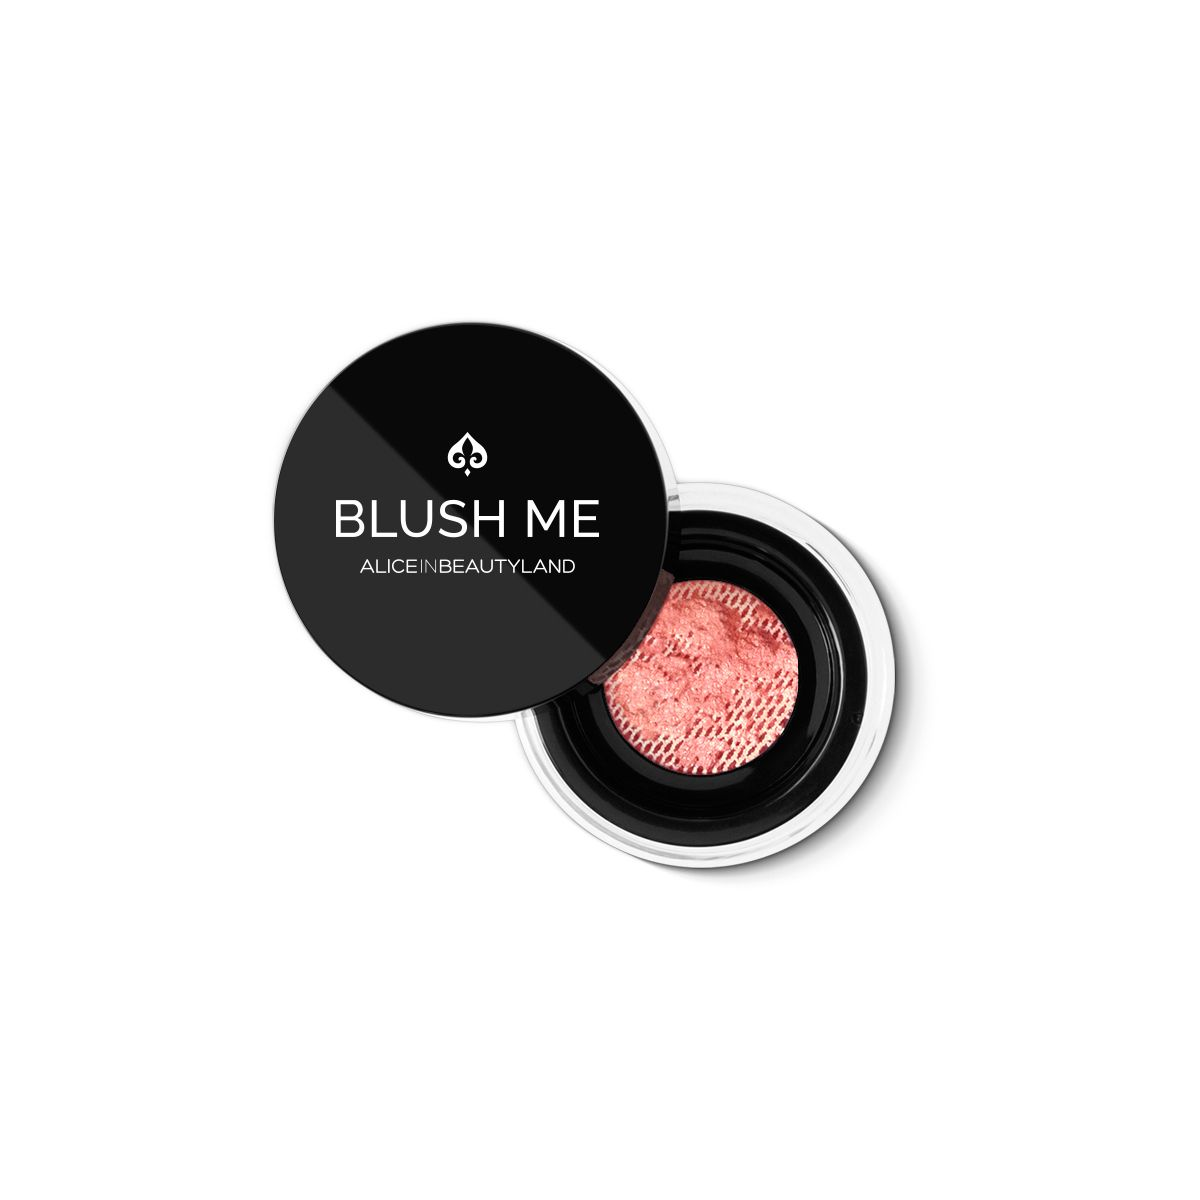 Blush Me de Alice in Beautyland color explorer